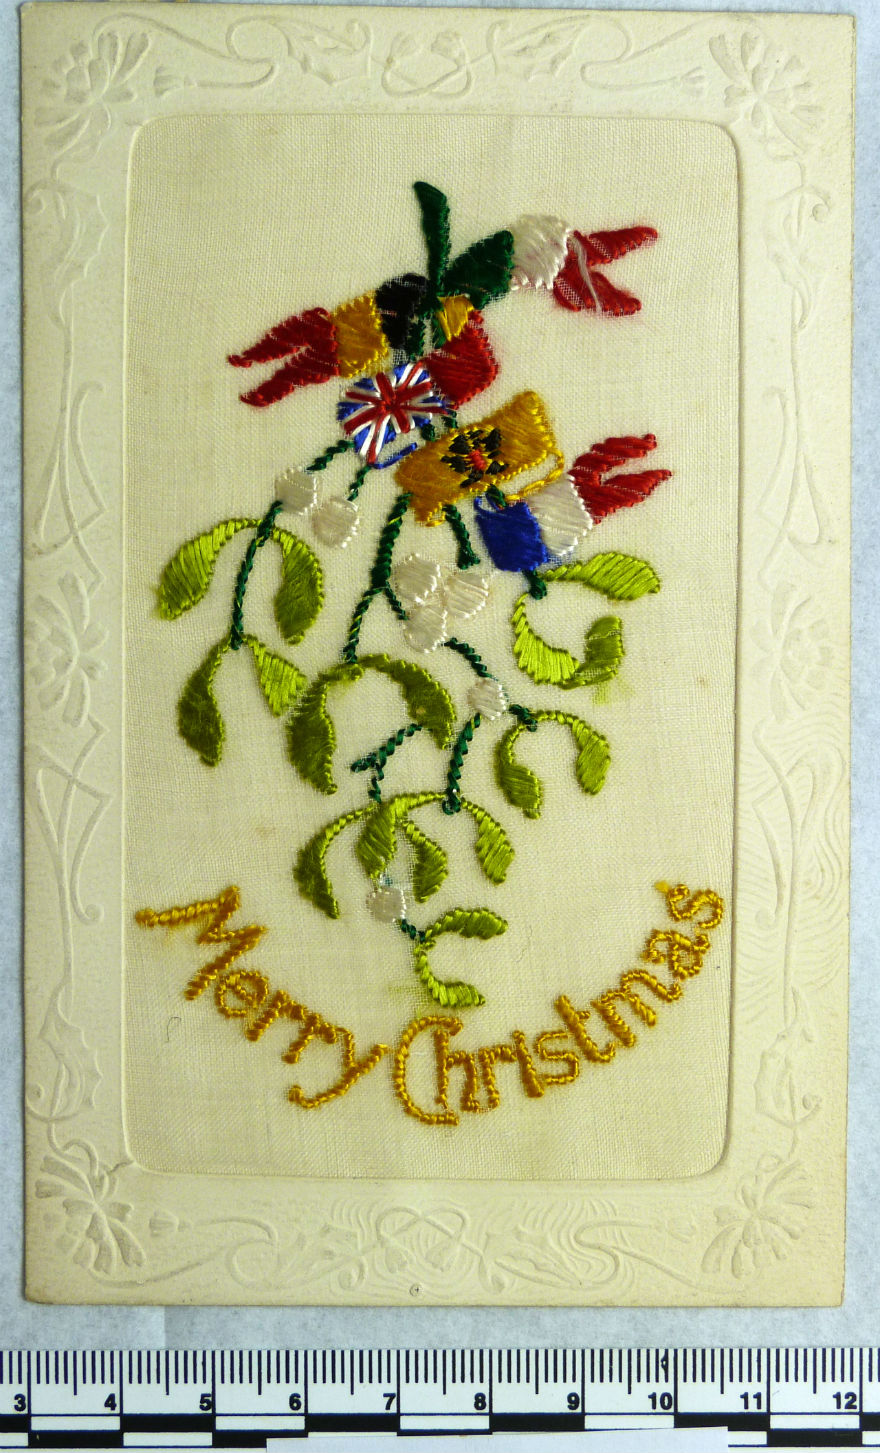 North Herts Museum update: Merry Christmas from 100 years ago